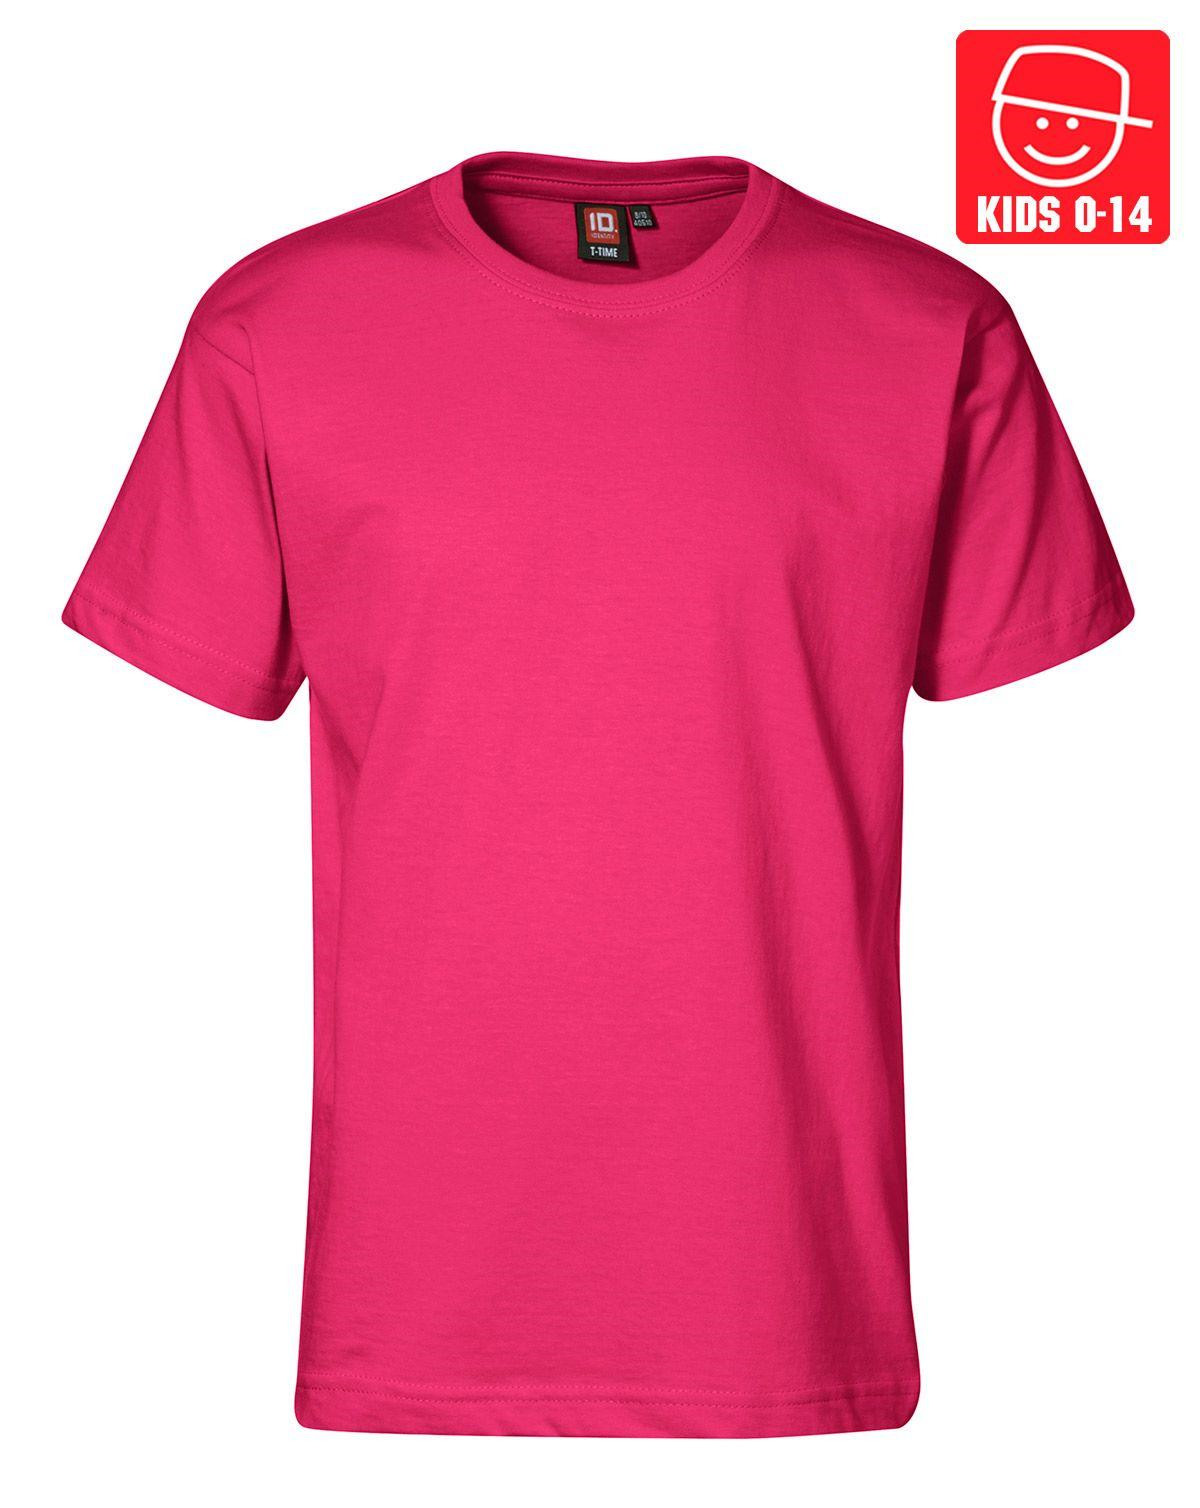 Image of   ID T-TIME T-shirt (Pink, 158)